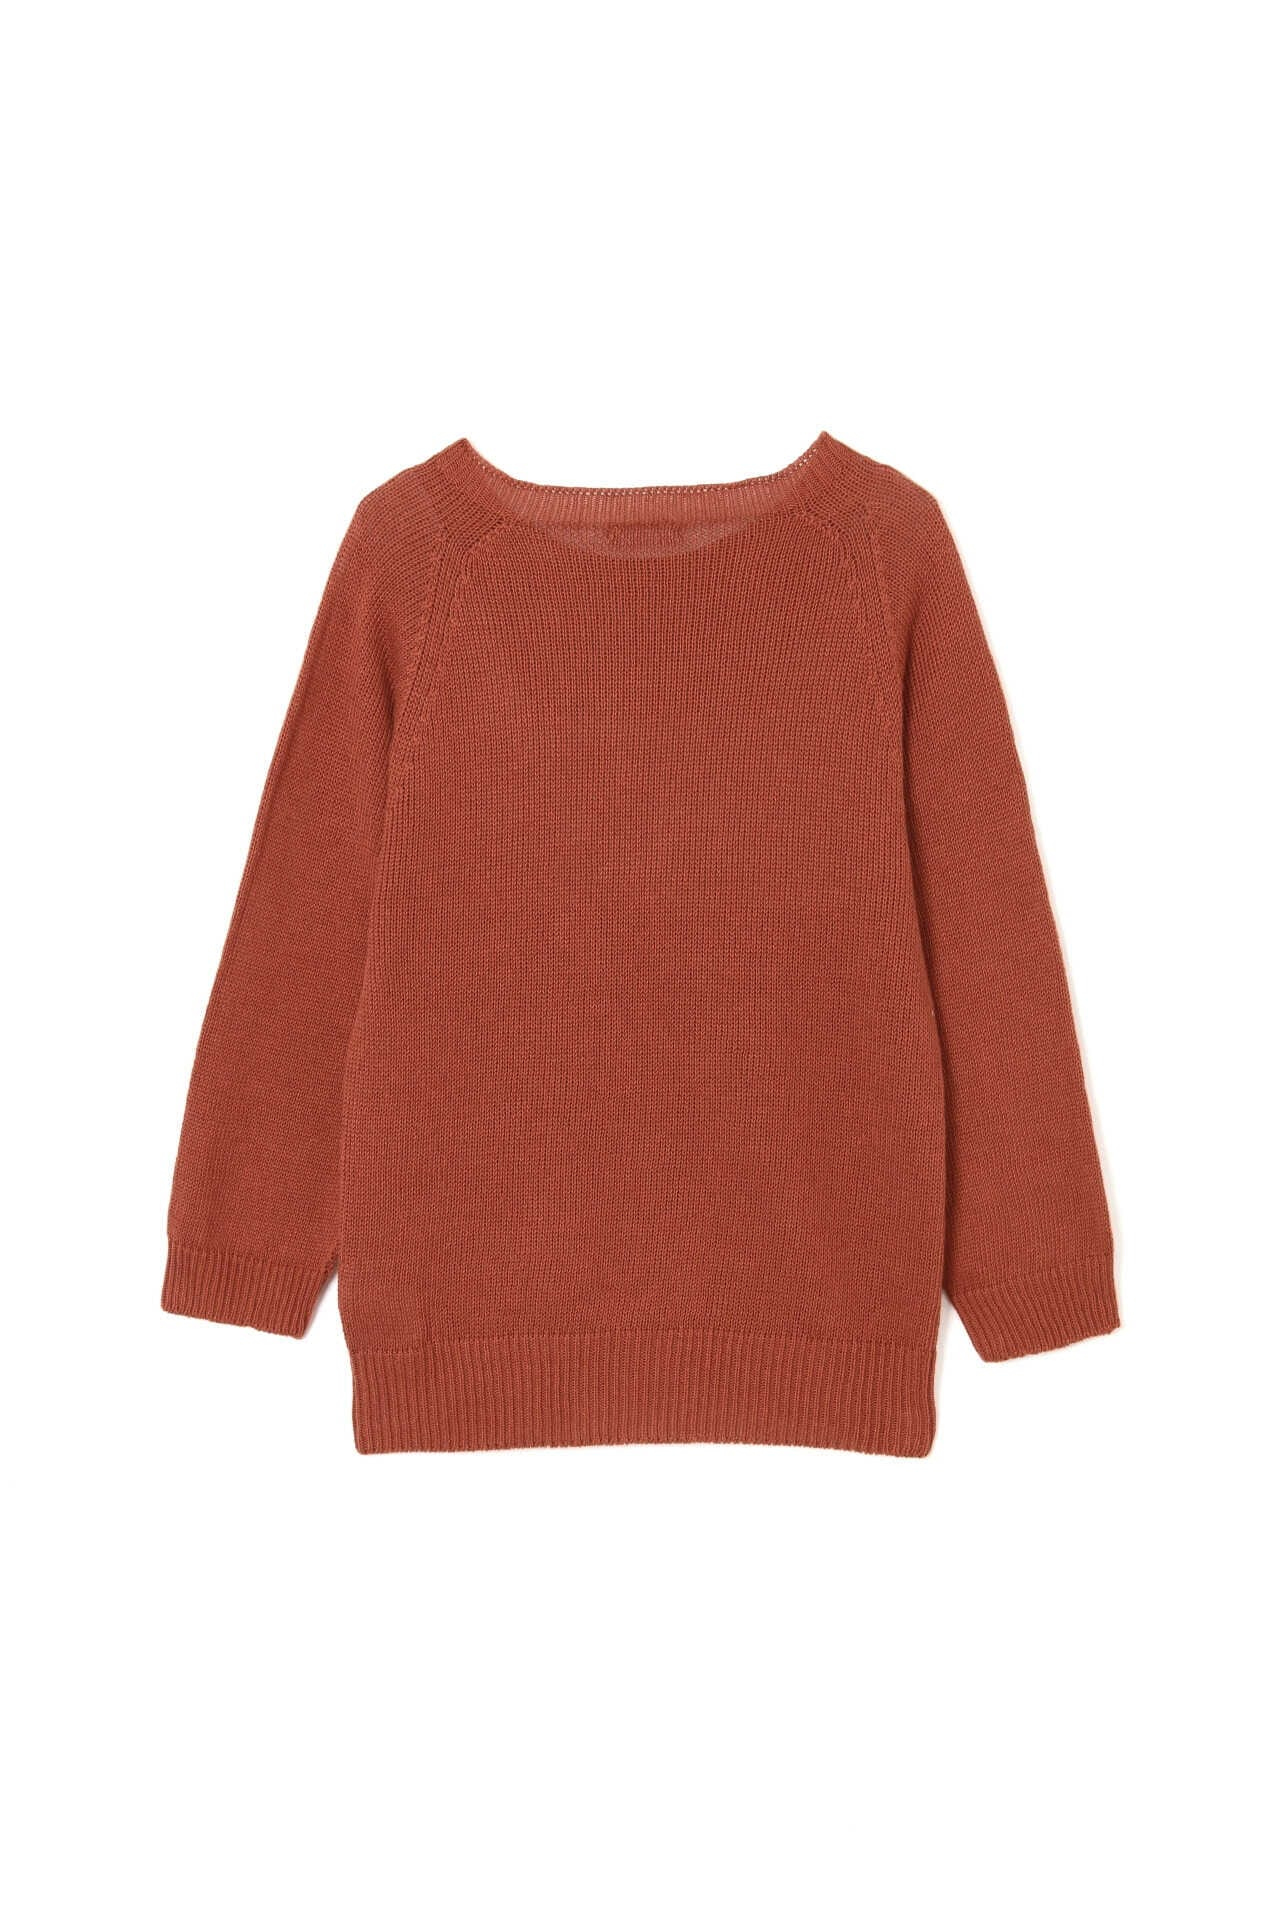 LINEN COTTON CREW NECK11